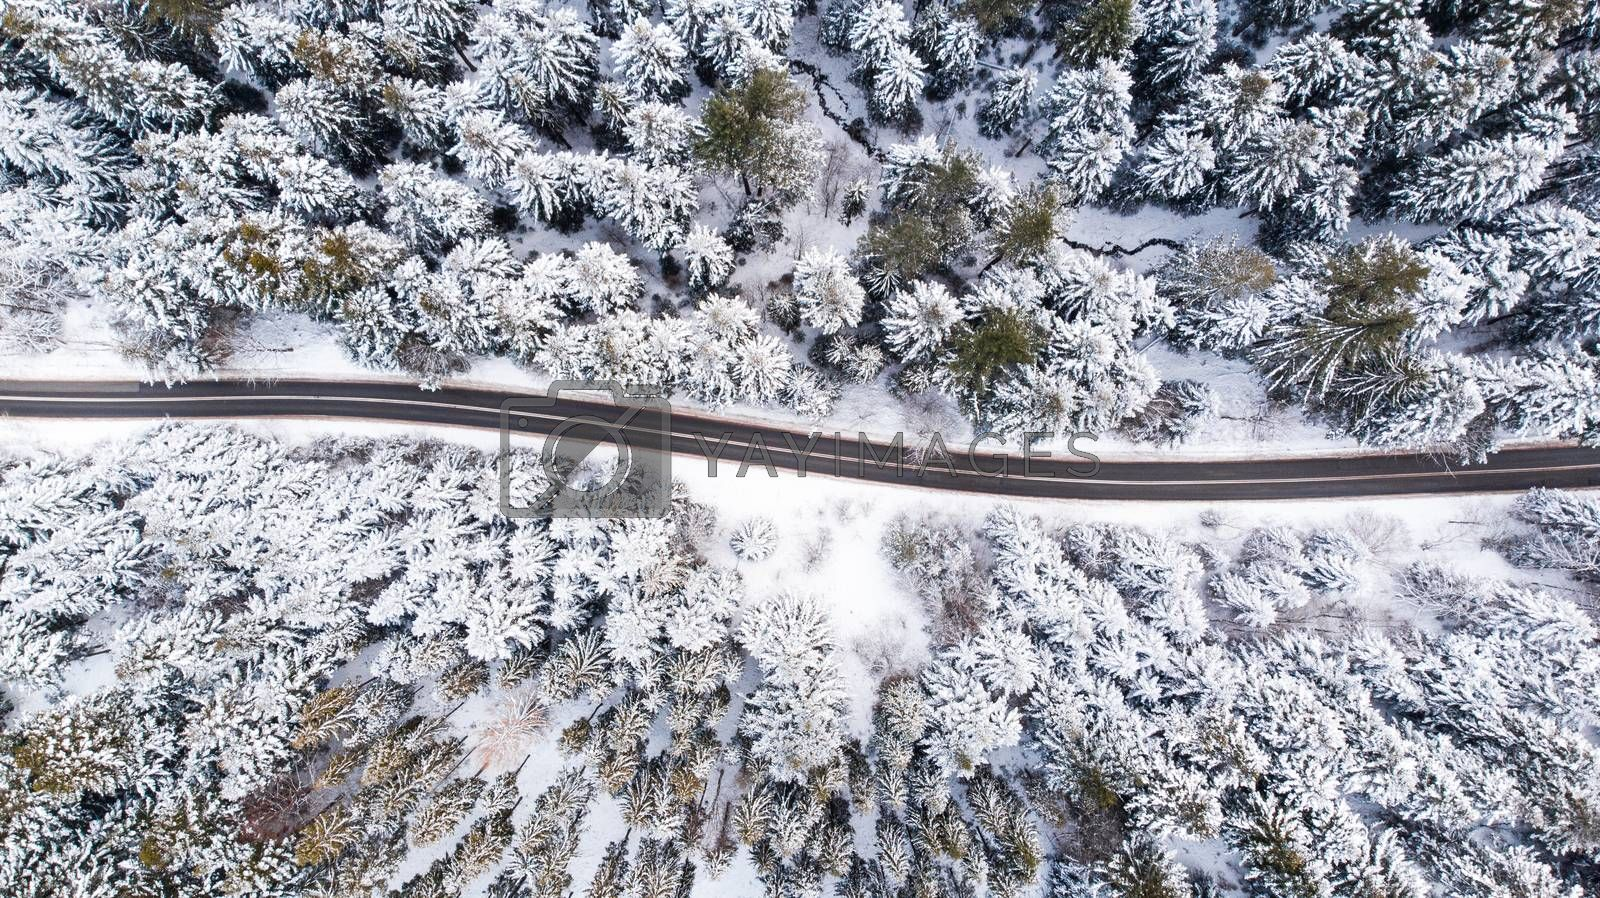 Road Trough Winter Wonderland, Top Down Drone View by merc67